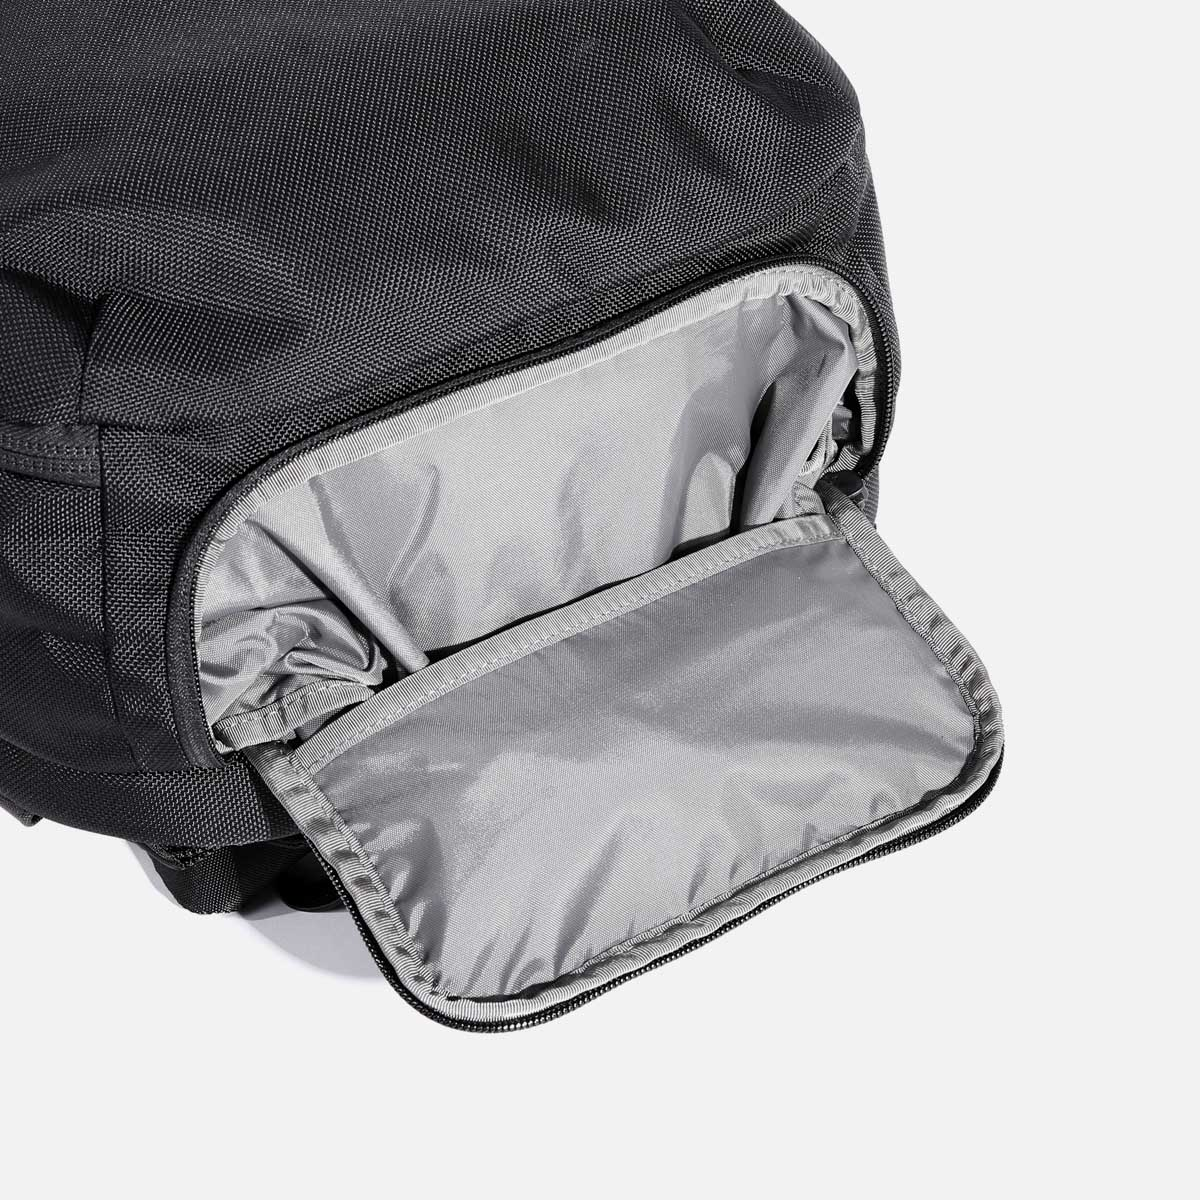 AER21022_travelpack2small_stowable.jpg